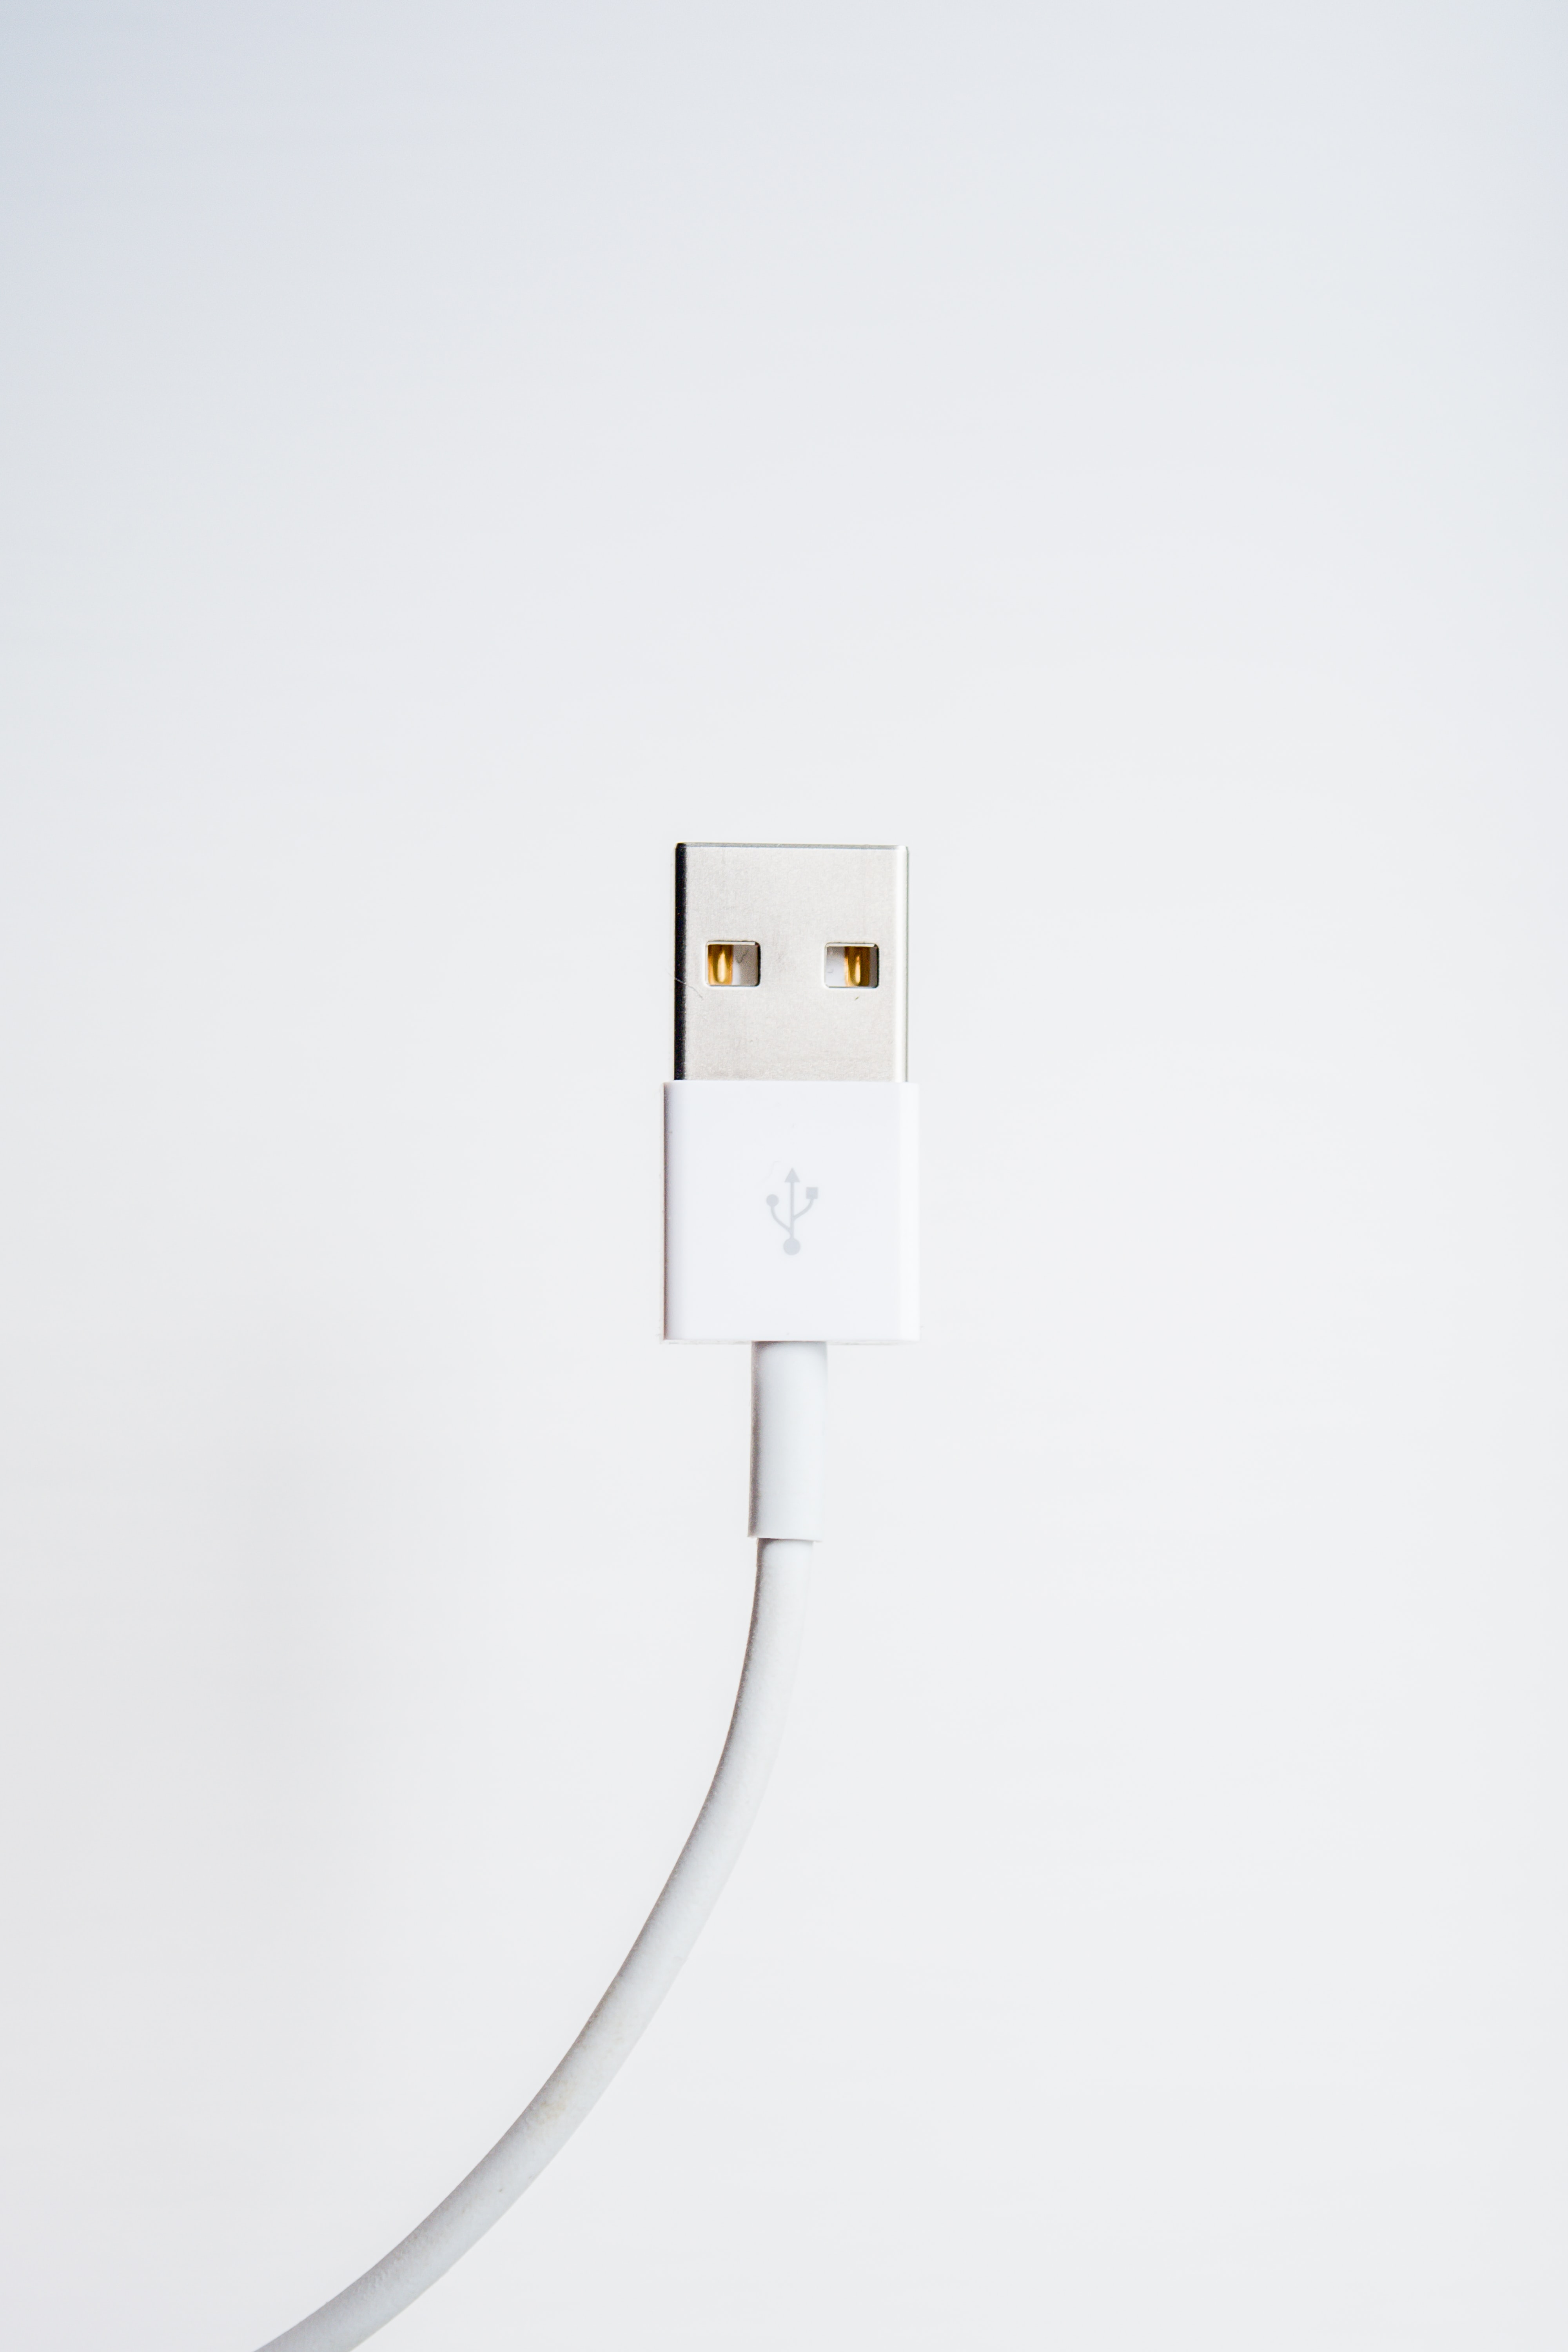 A white cable with an USB connector